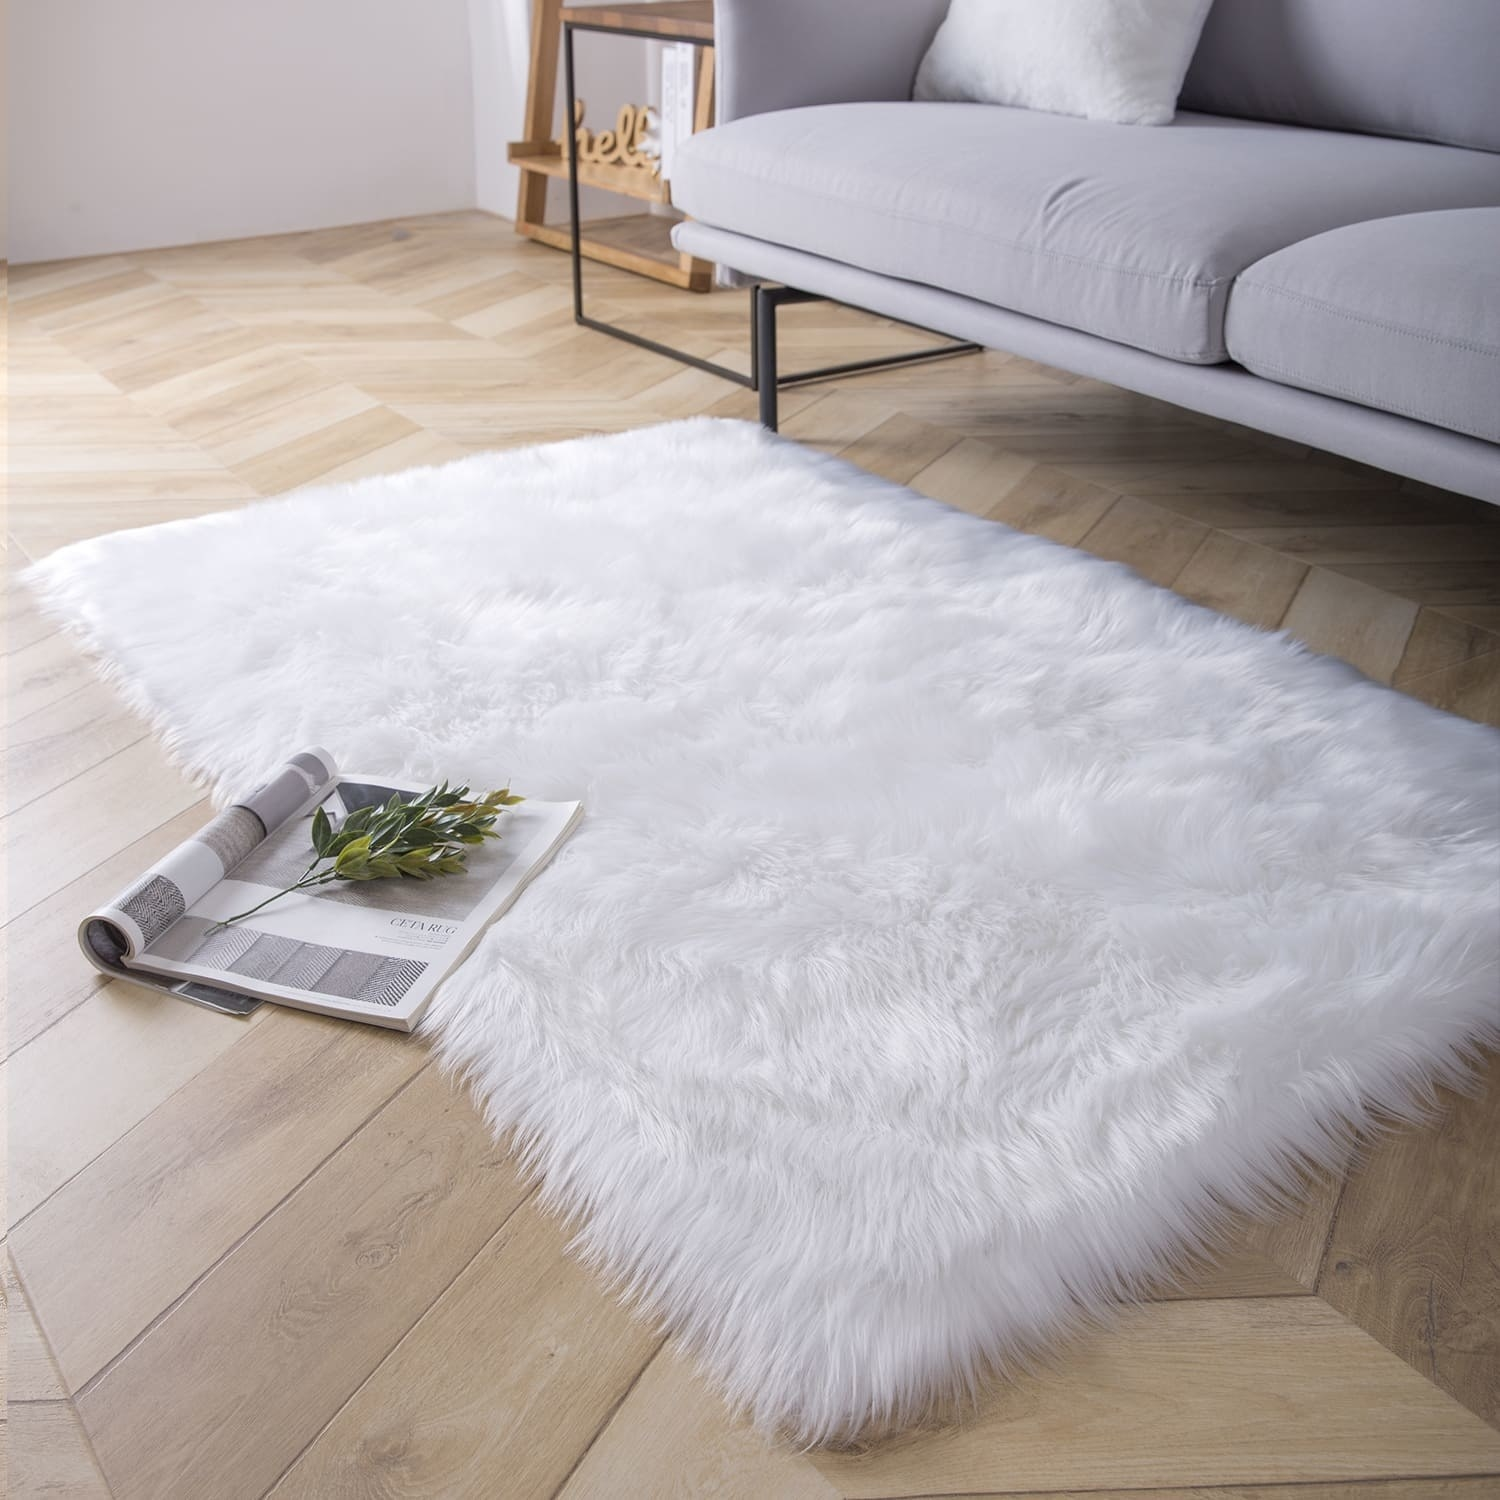 Faux fur rug in white